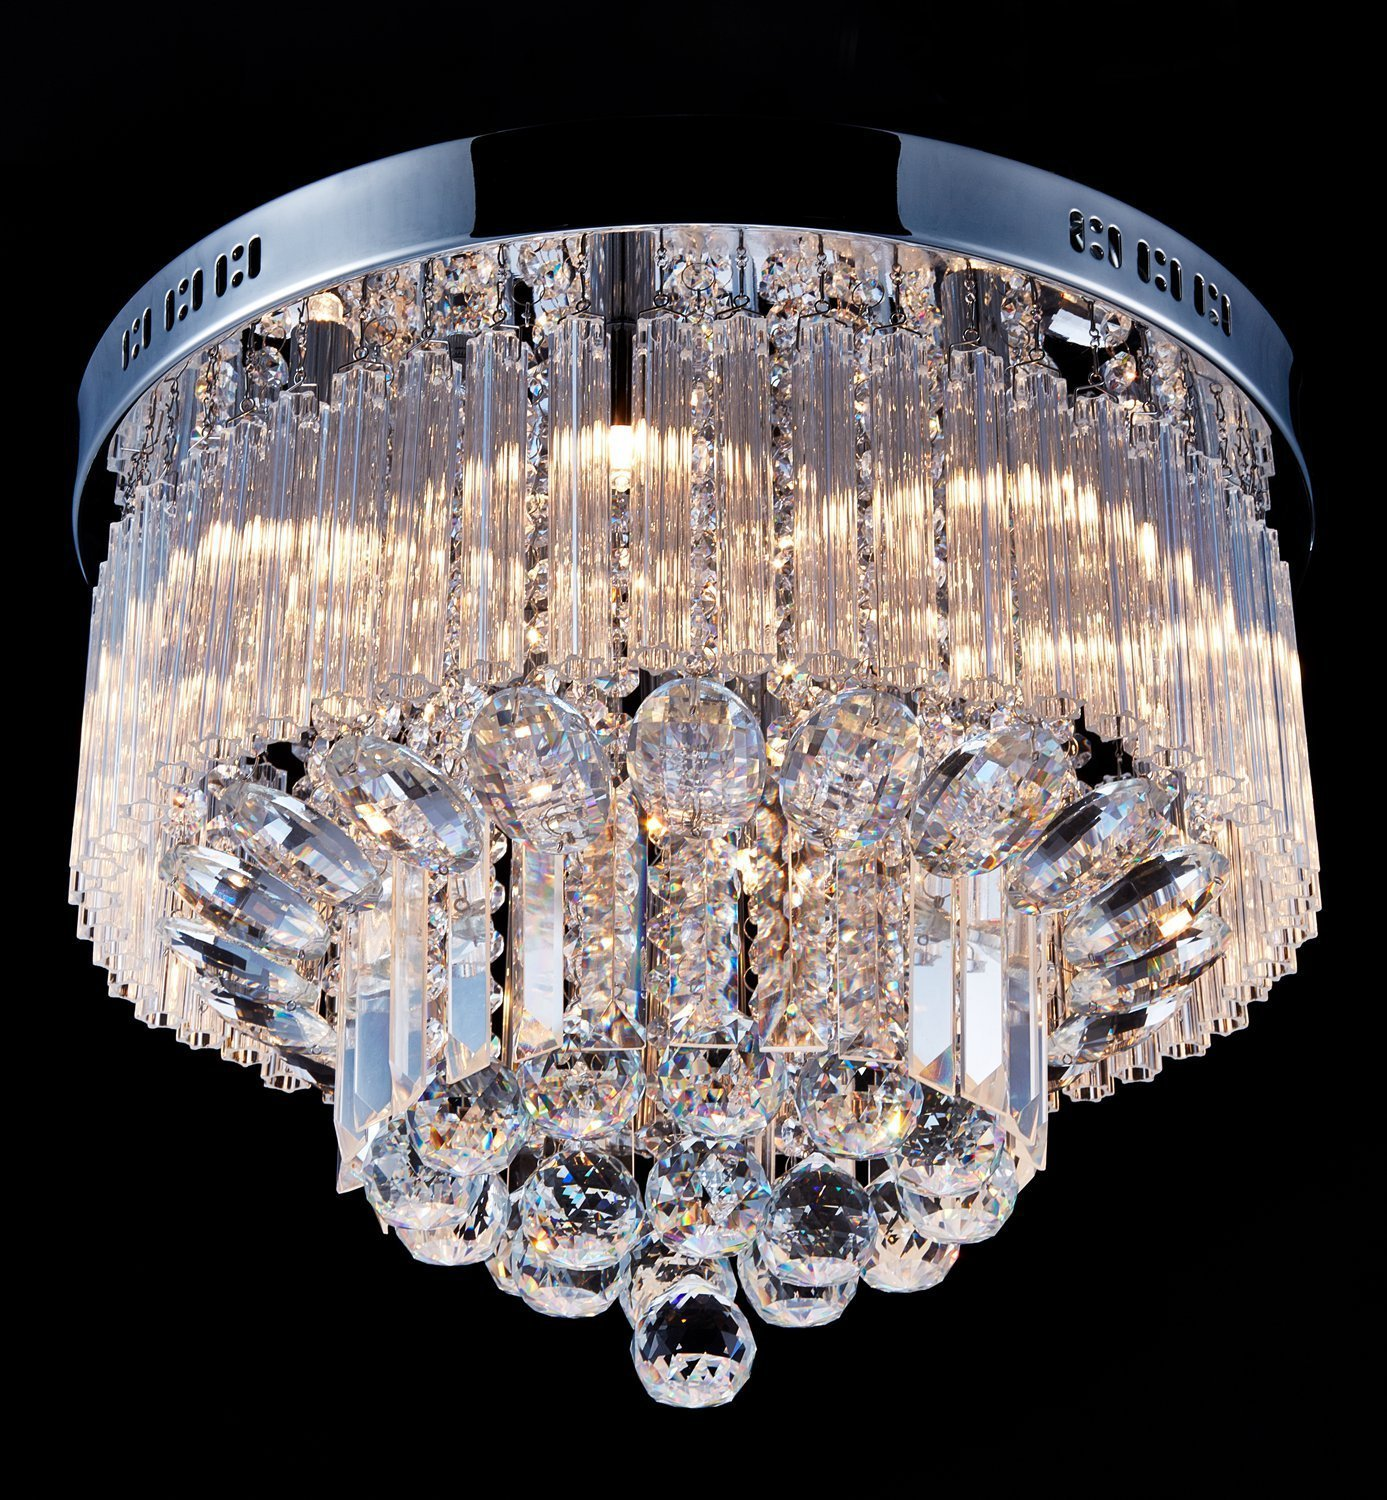 Saint Mossi Chandelier Modern K9 Crystal Raindrop Chandelier Lighting Flush mount LED Ceiling Light Fixture Pendant Lamp for Dining Room Bathroom Bedroom Livingroom 9 G9 Bulbs Required H12'' X D18'' by Saint Mossi